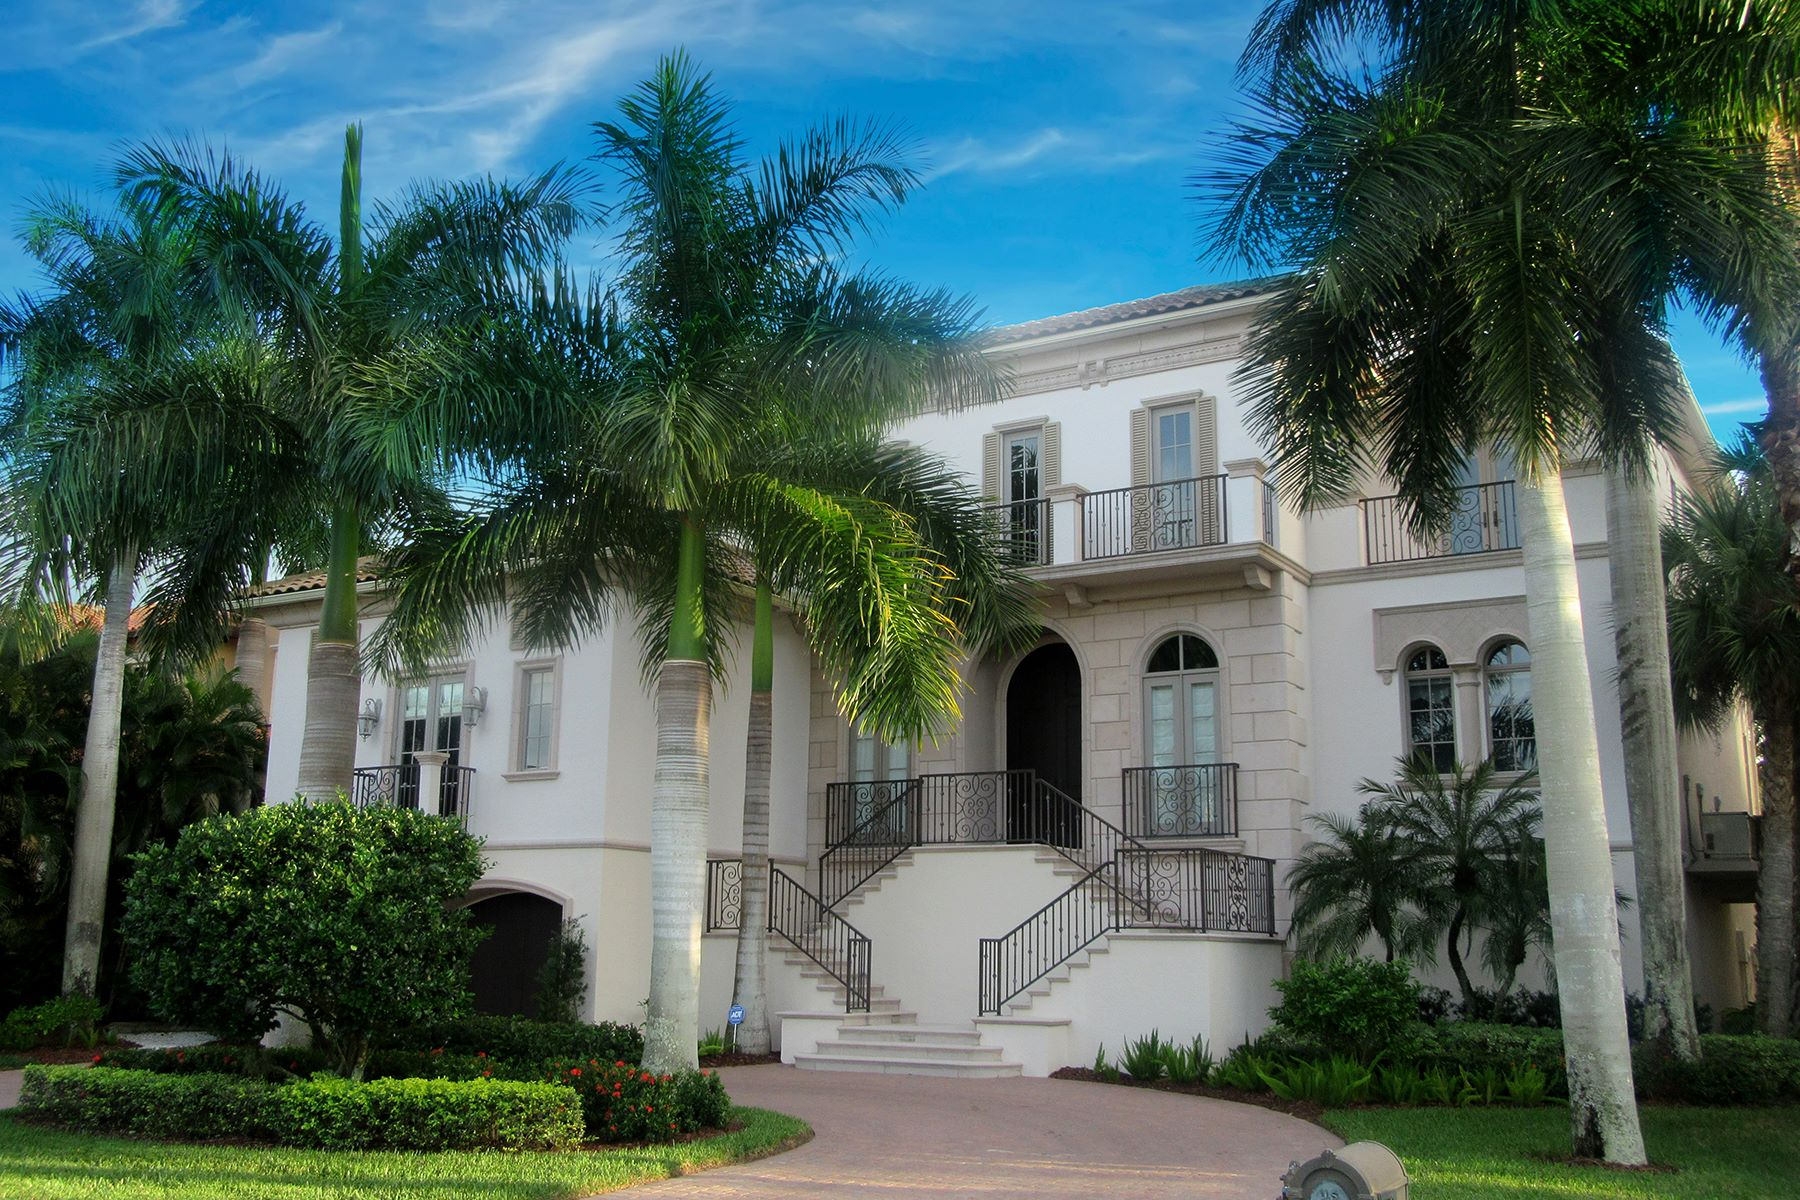 Single Family Home for Sale at VANDERBILT BEACH - CONNERS 172 Seabreeze Ave, Naples, Florida 34108 United States